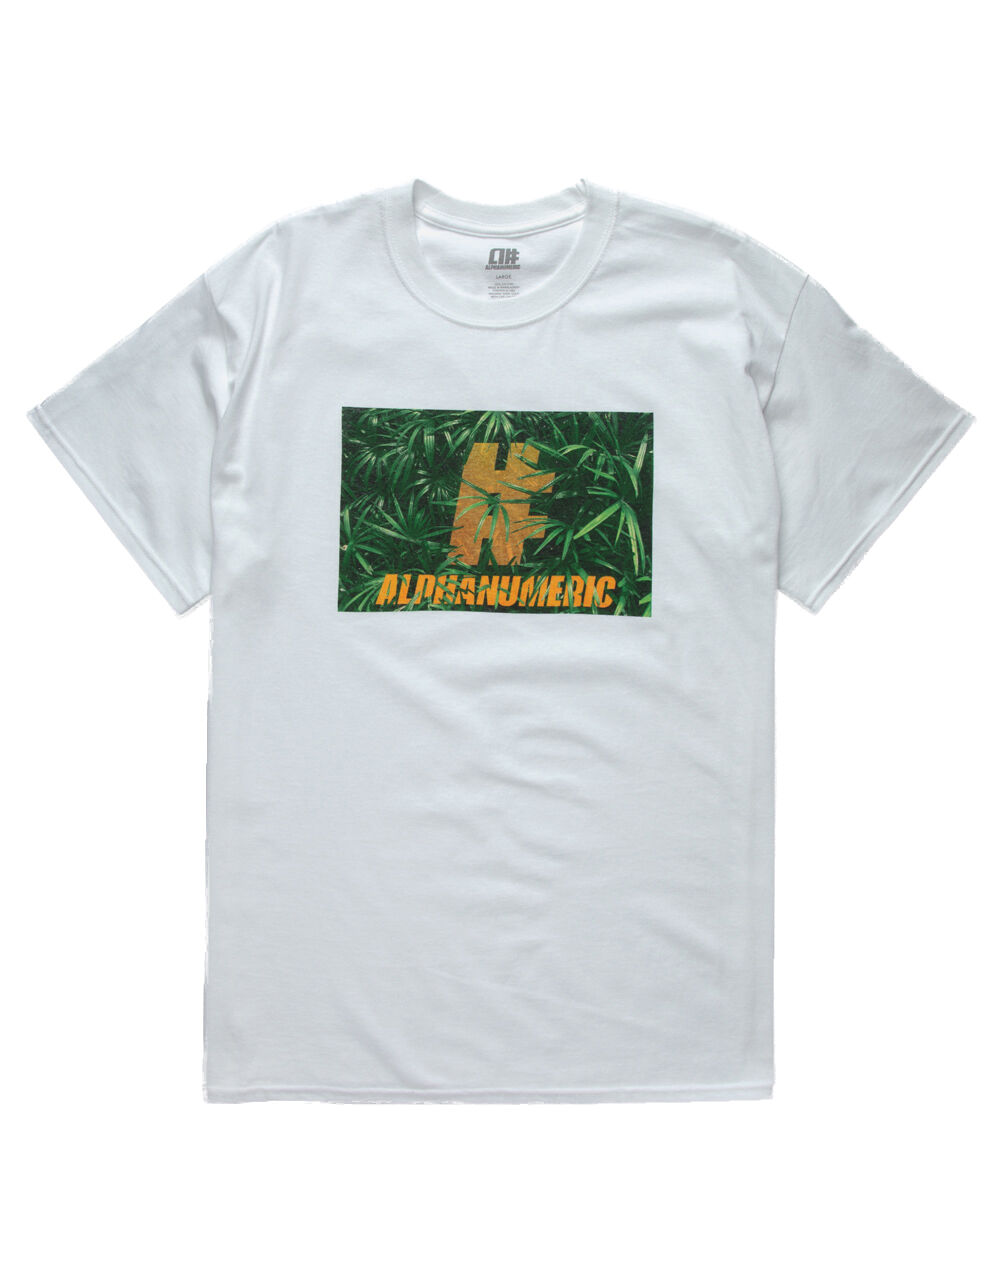 Image of ALPHANUMERIC WEEDEATER T-SHIRT